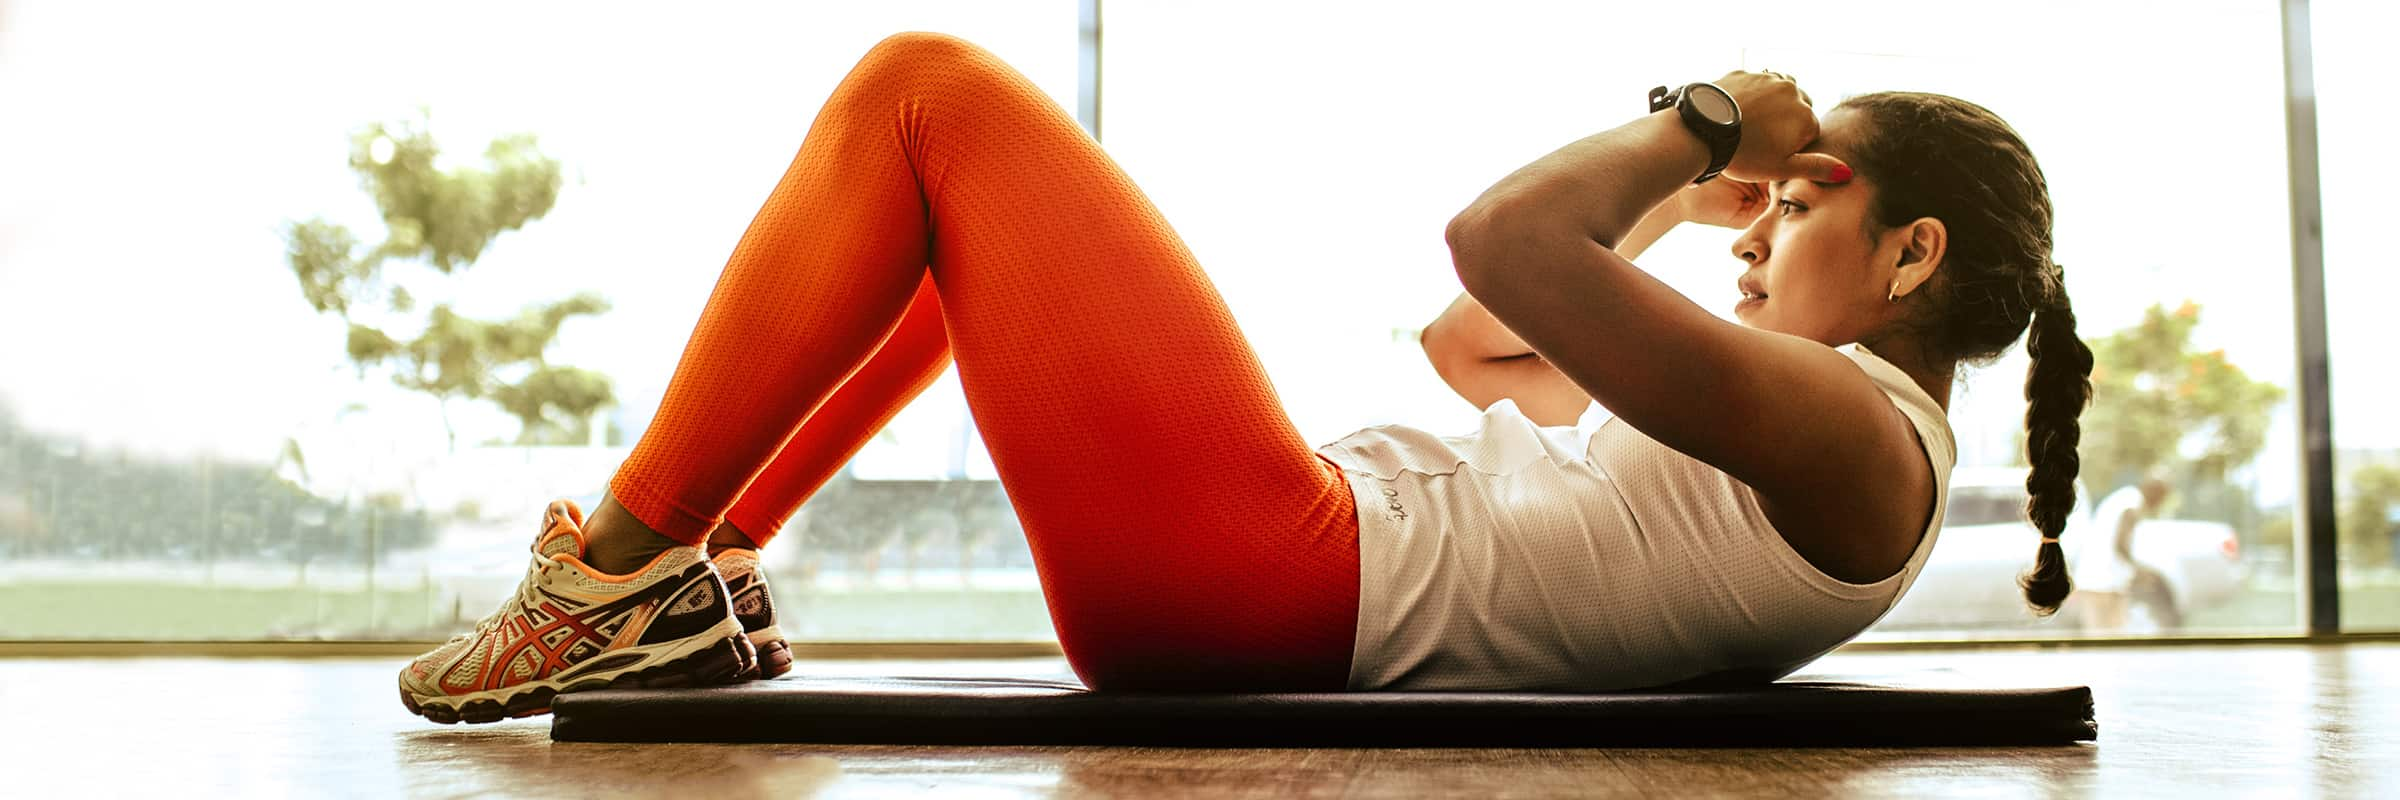 5 Easy At-Home Workouts